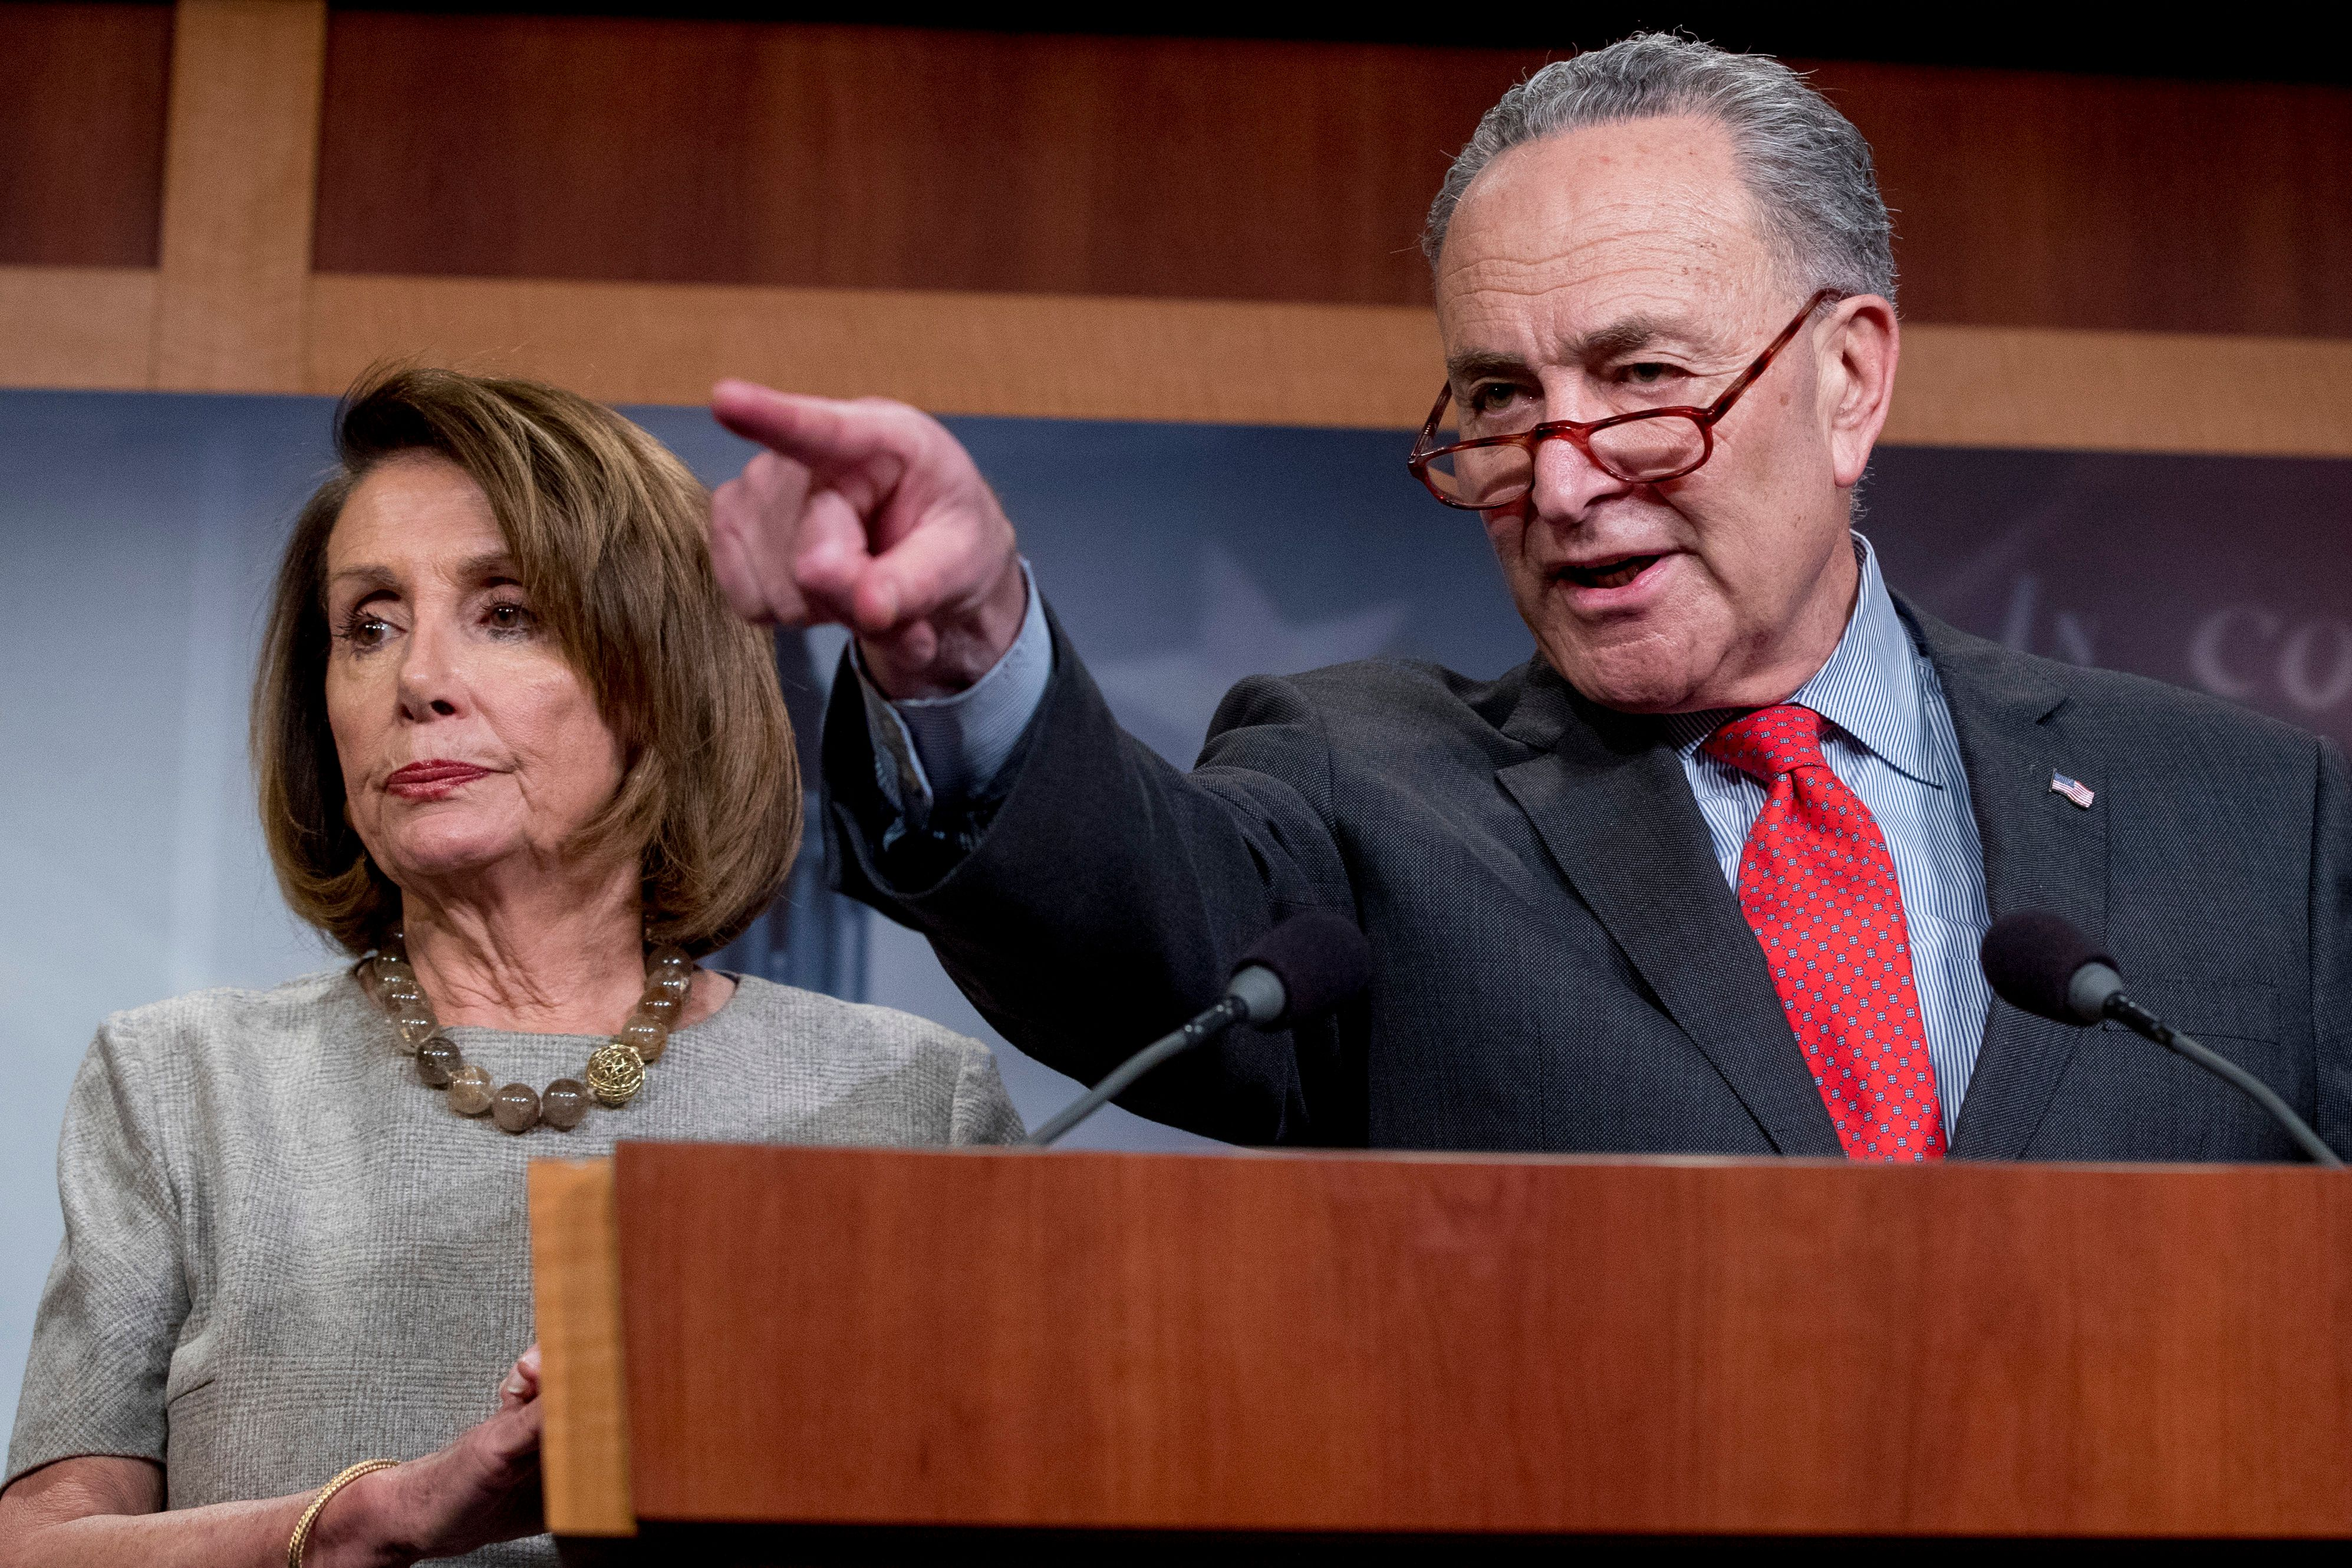 Senate Minority Leader Sen. Chuck Schumer of N.Y., accompanied by Speaker Nancy Pelosi of Calif., left, calls on a reporter during a news conference on Capitol Hill in Washington, Friday, Jan. 25, 2019, after President Donald Trump announces a deal to reopen the government for three weeks. (AP Photo/Andrew Harnik)